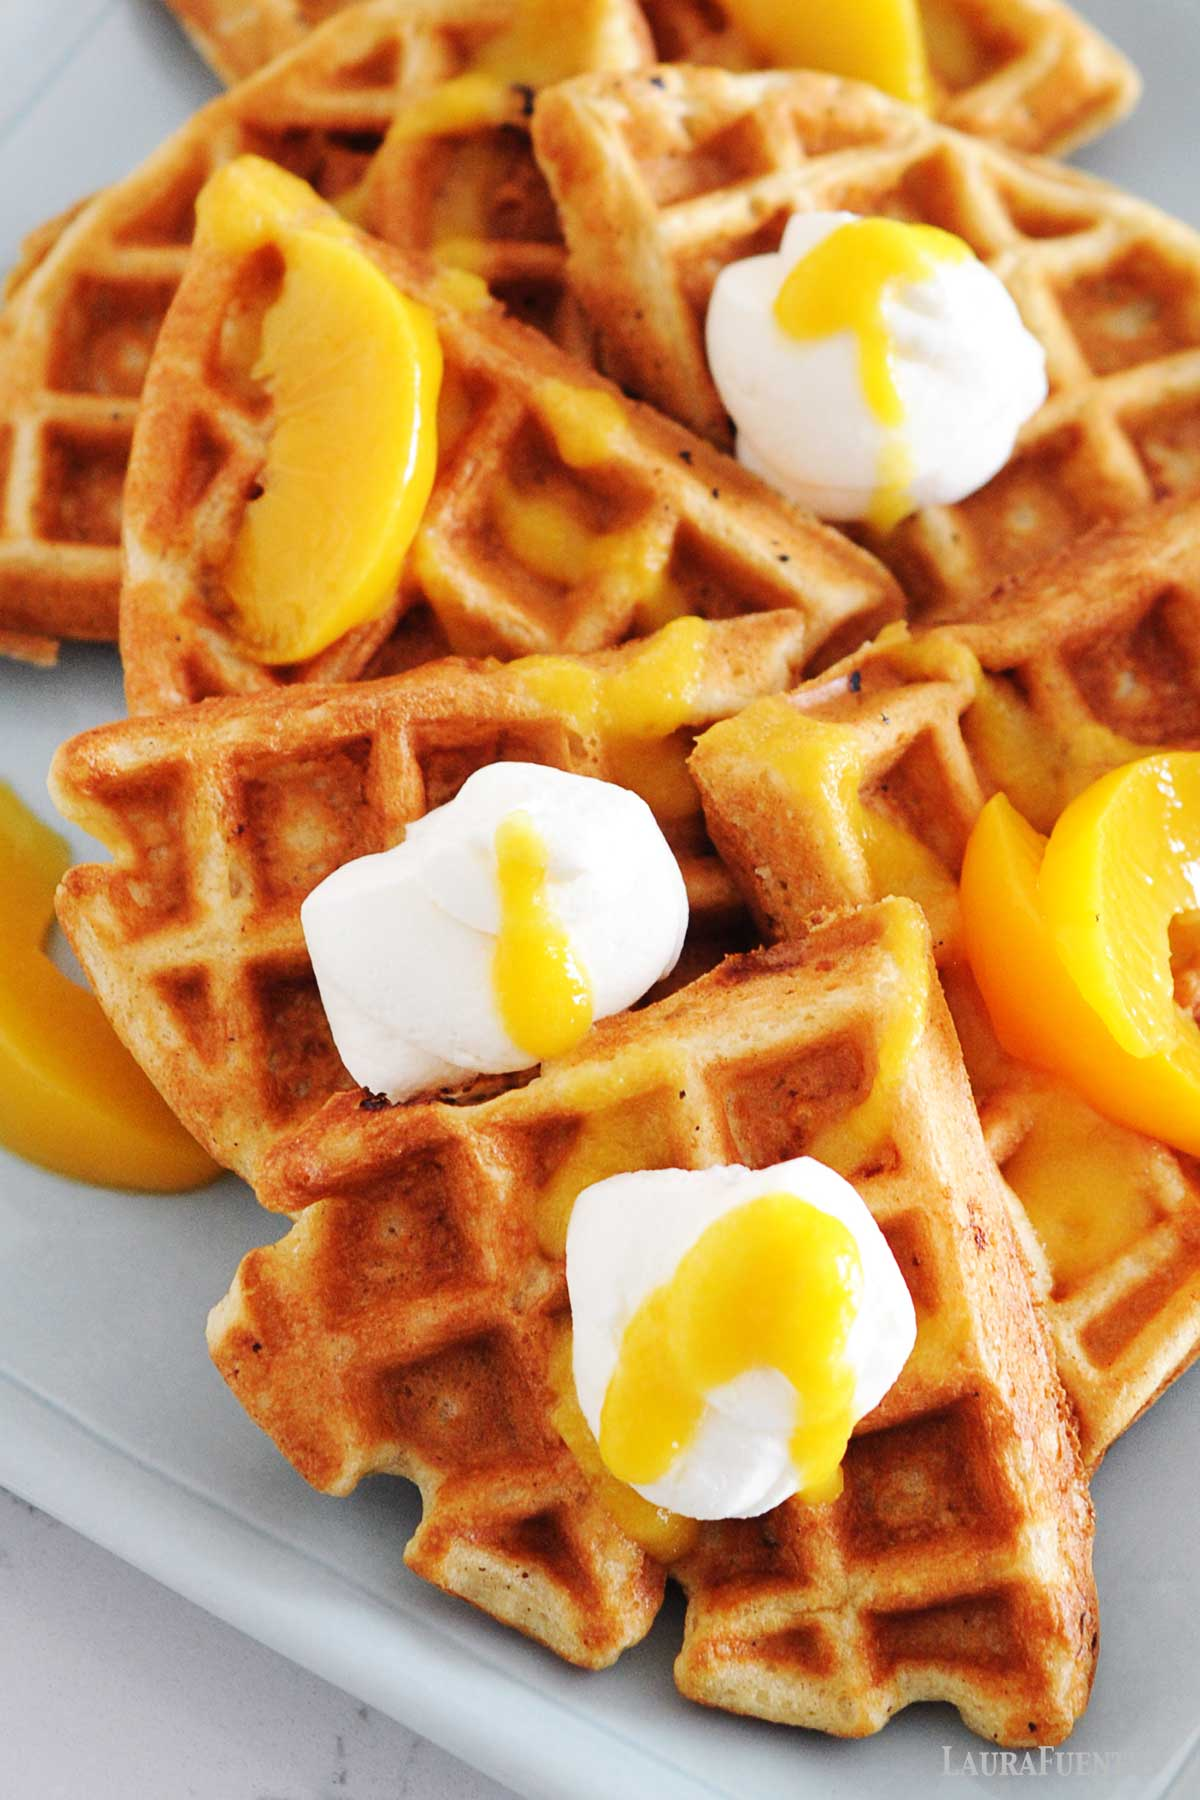 waffles topped with peac slices and peach syrup